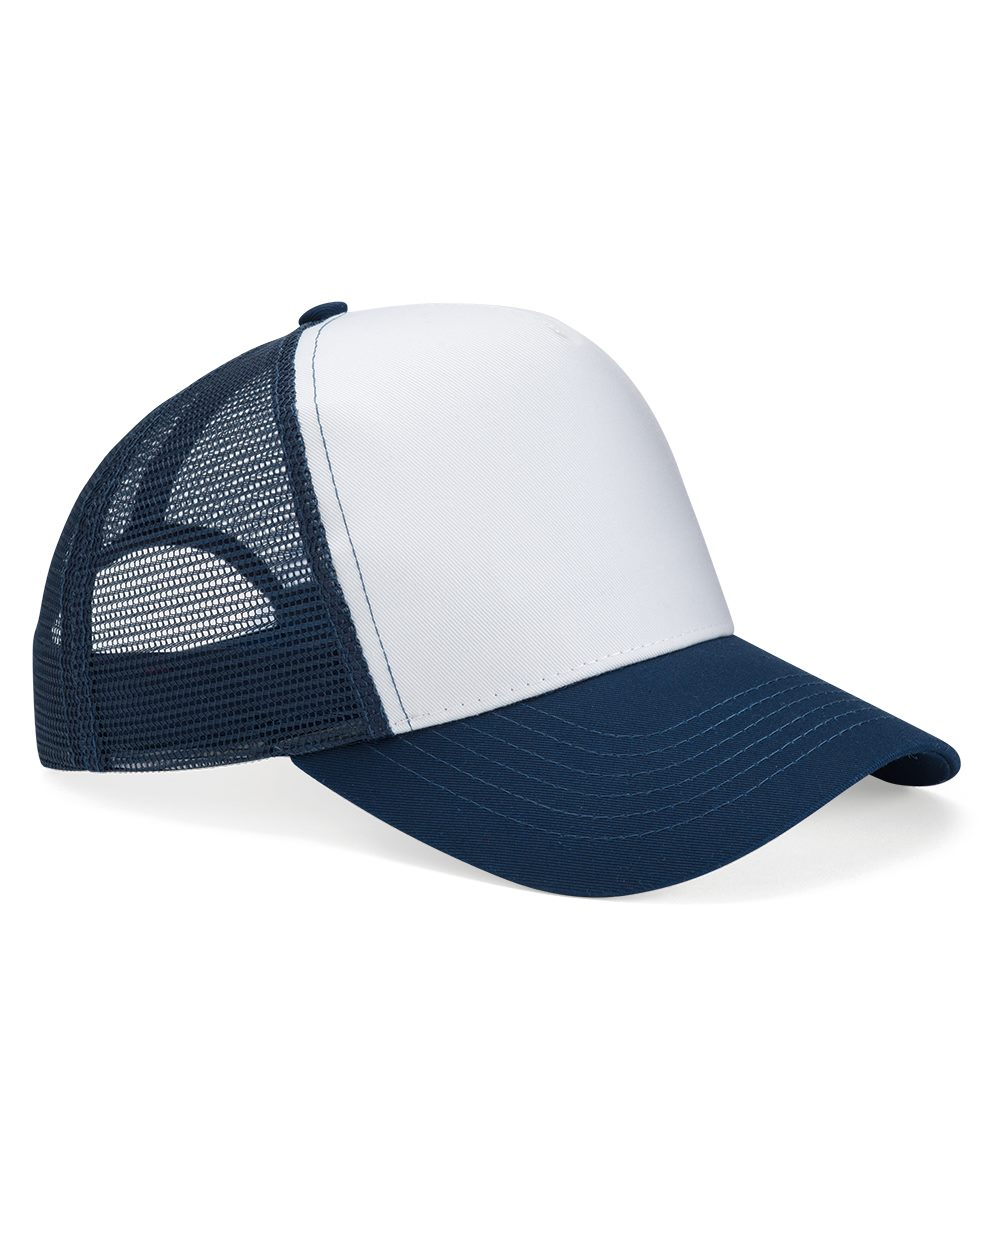 Mega Cap 6886 - Five Panel PET Mesh Back Trucker